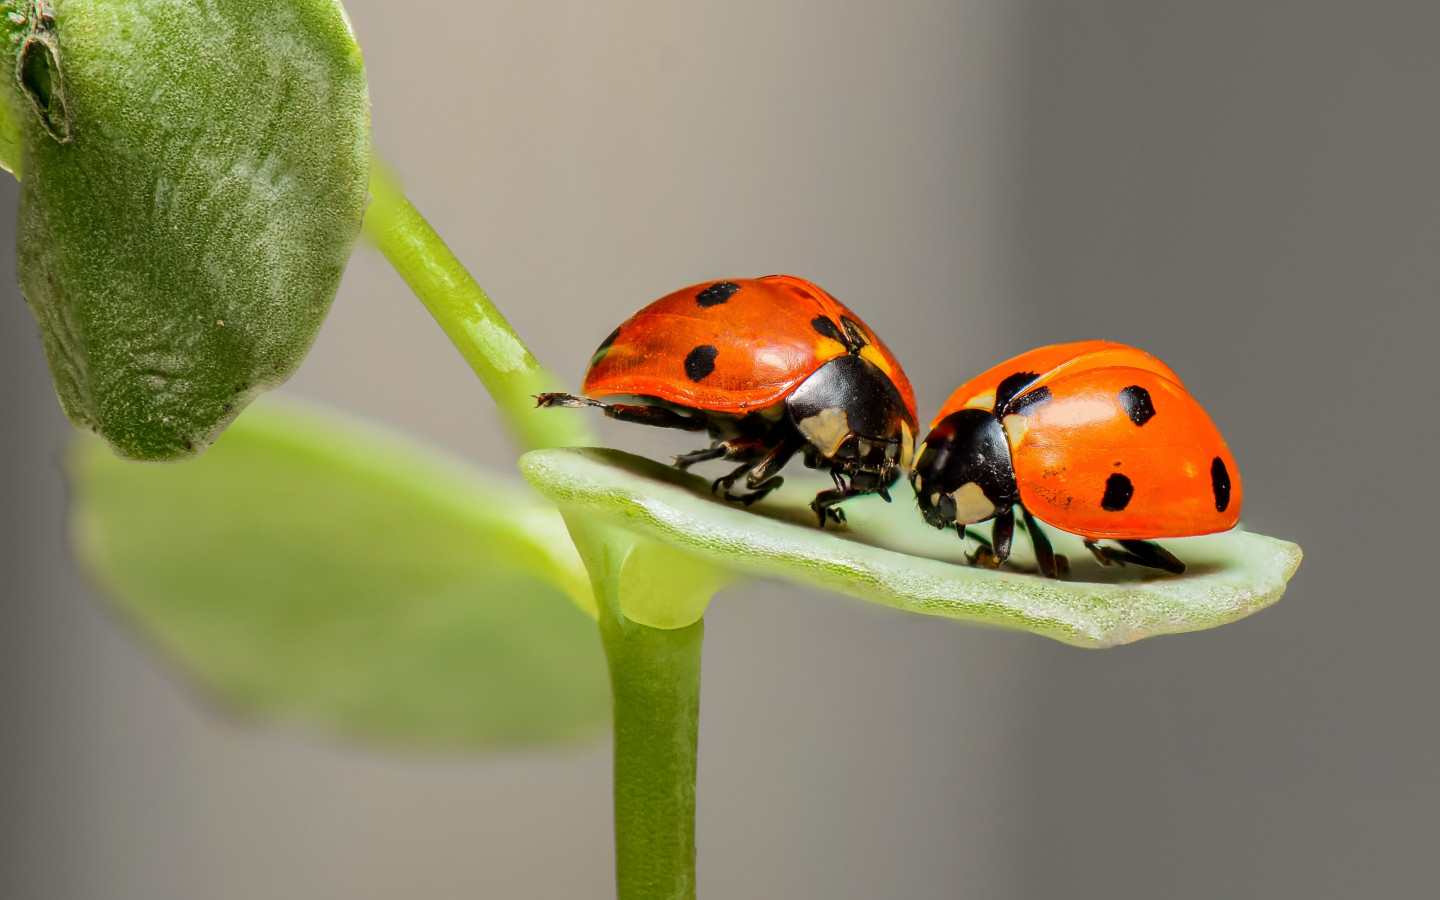 Ladybird, the insect wallpaper 1440x900